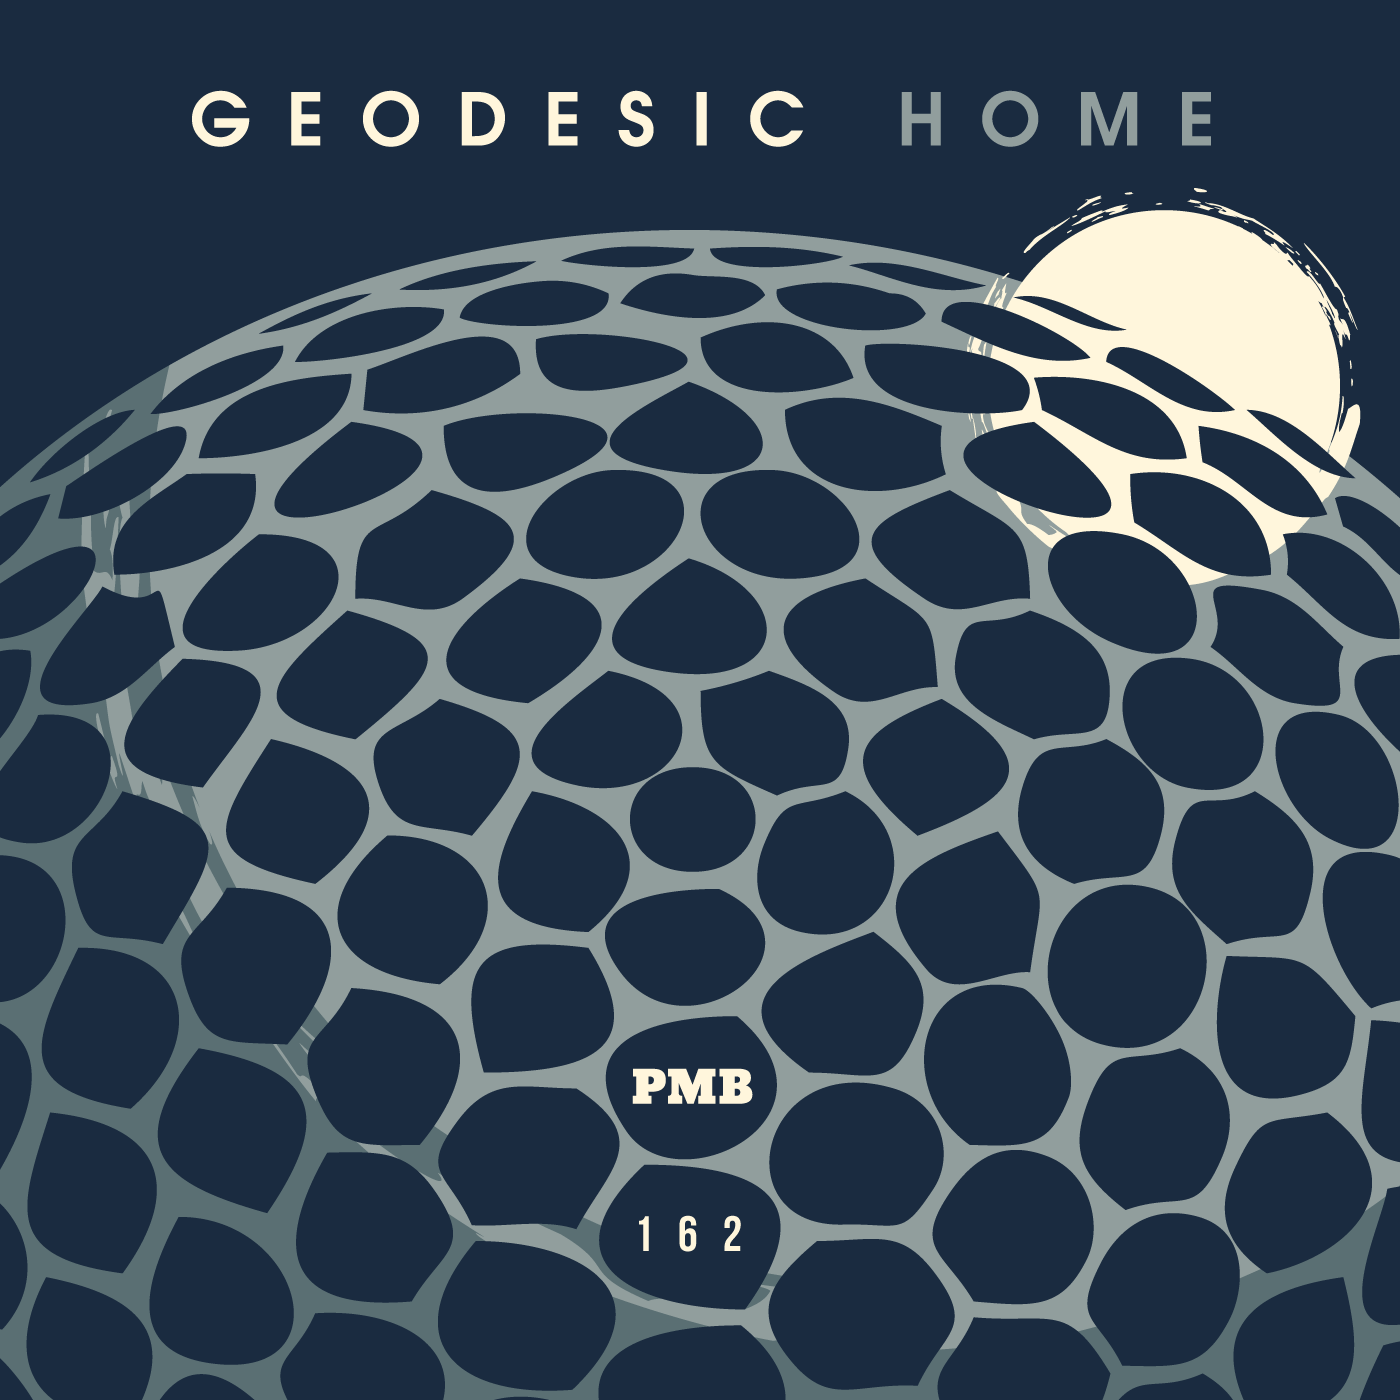 PMB162 Geodesic Home